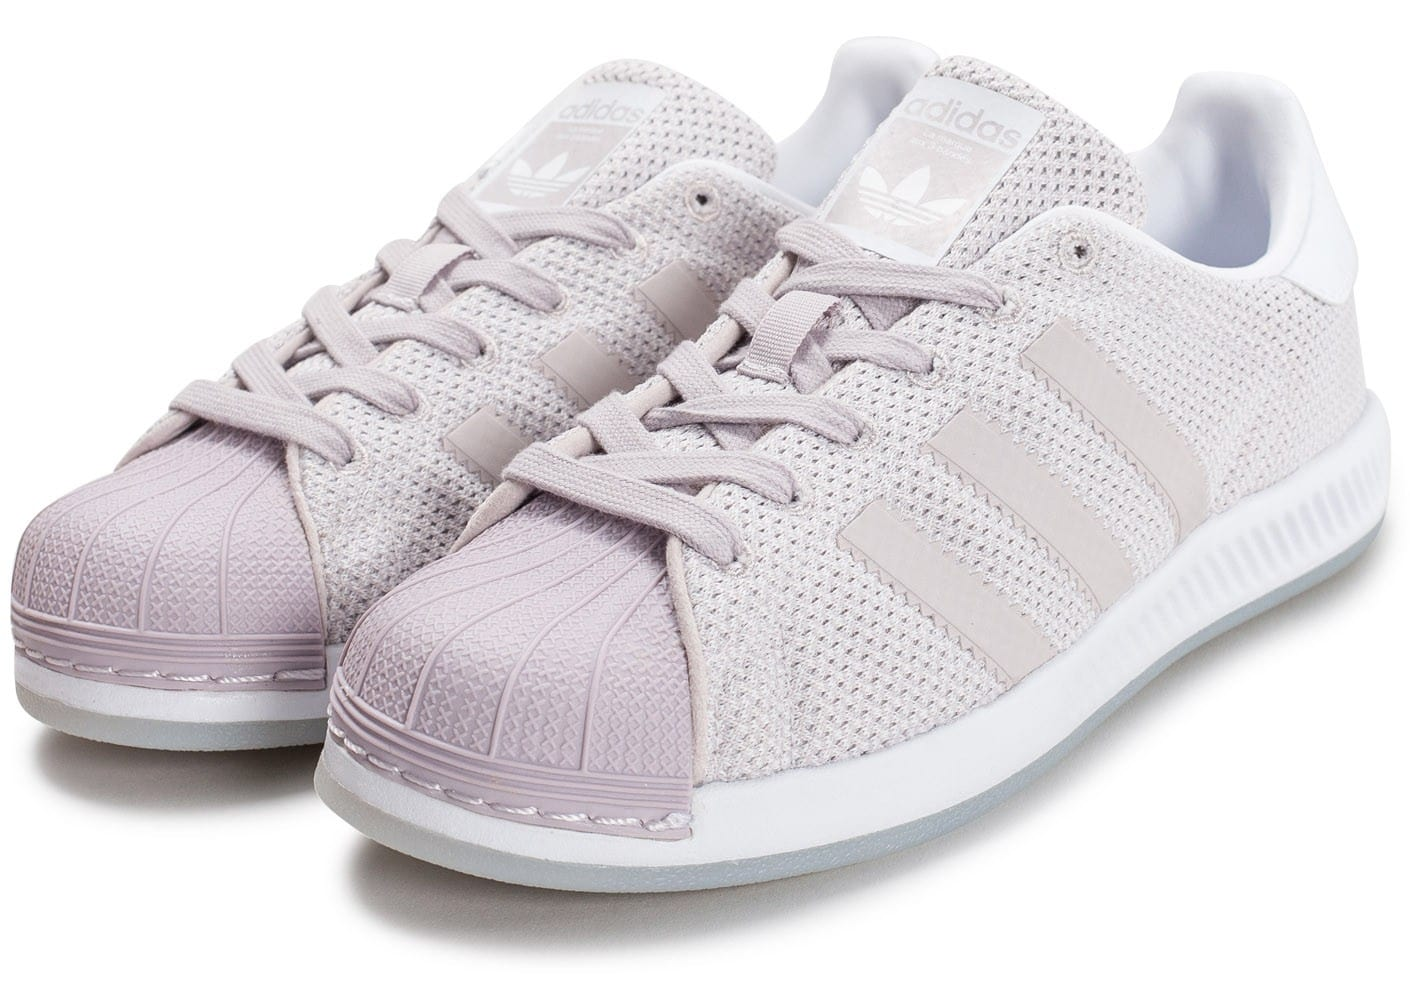 low priced debf8 fbe32 adidas Superstar W Bounce mauve - Chaussures adidas .